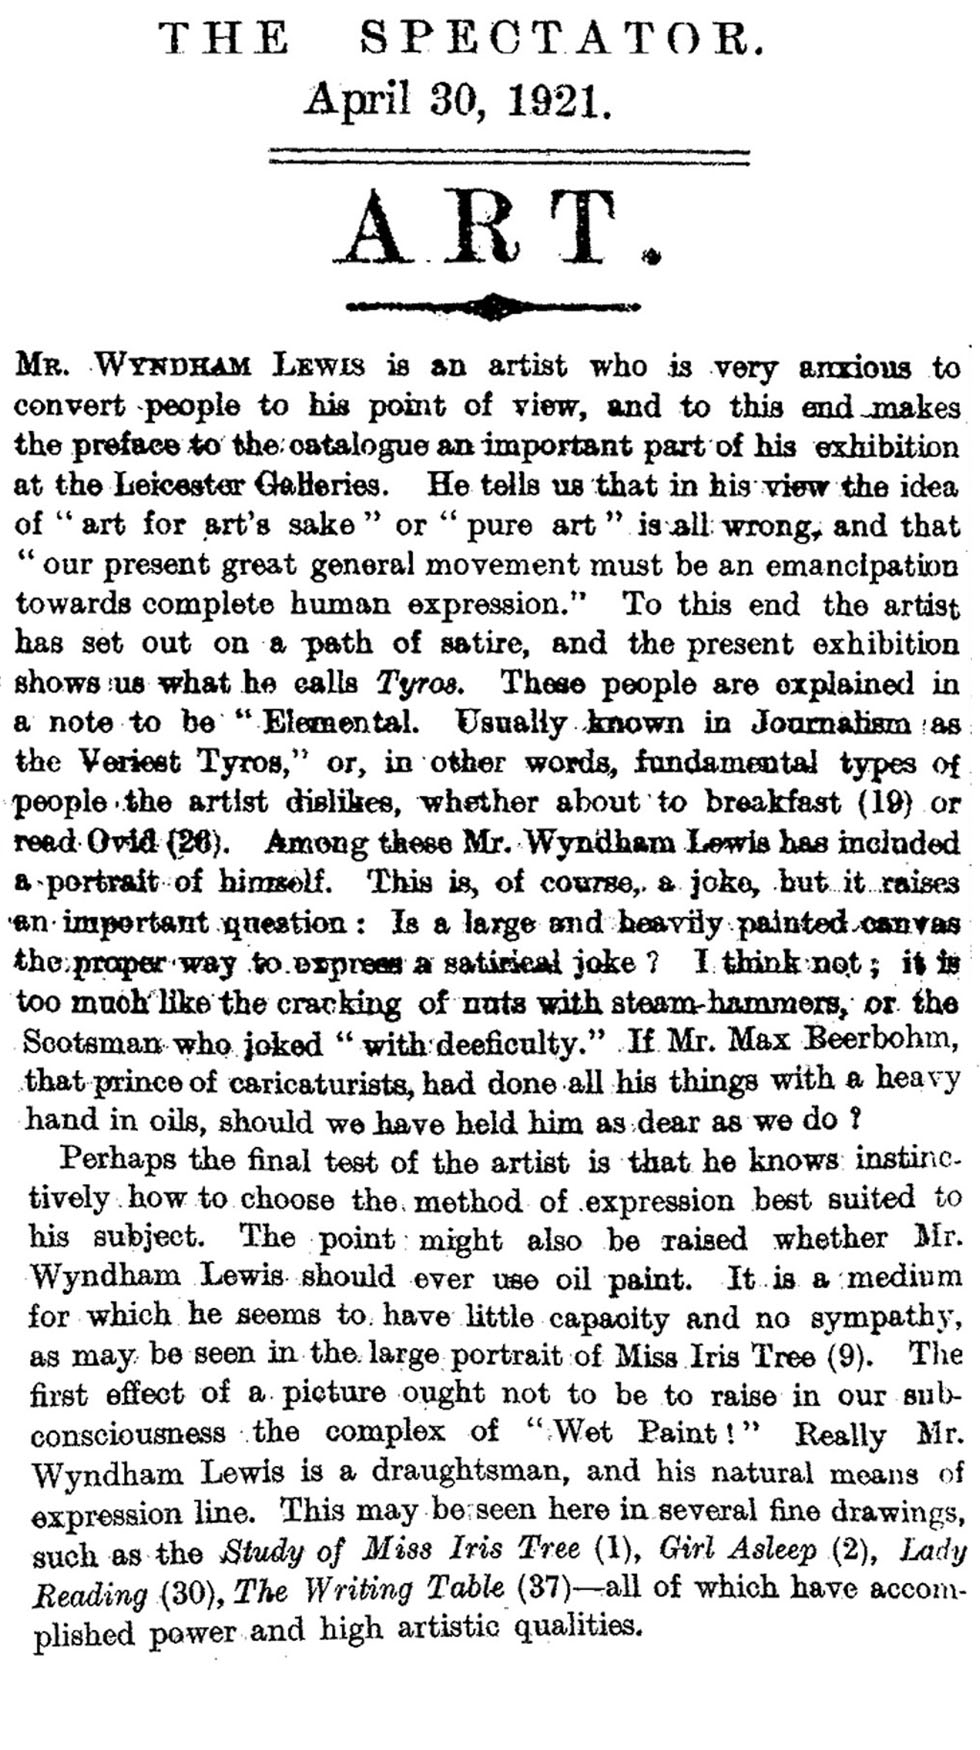 Wyndham Lewis Gets Panned (The Spectator, 1921)